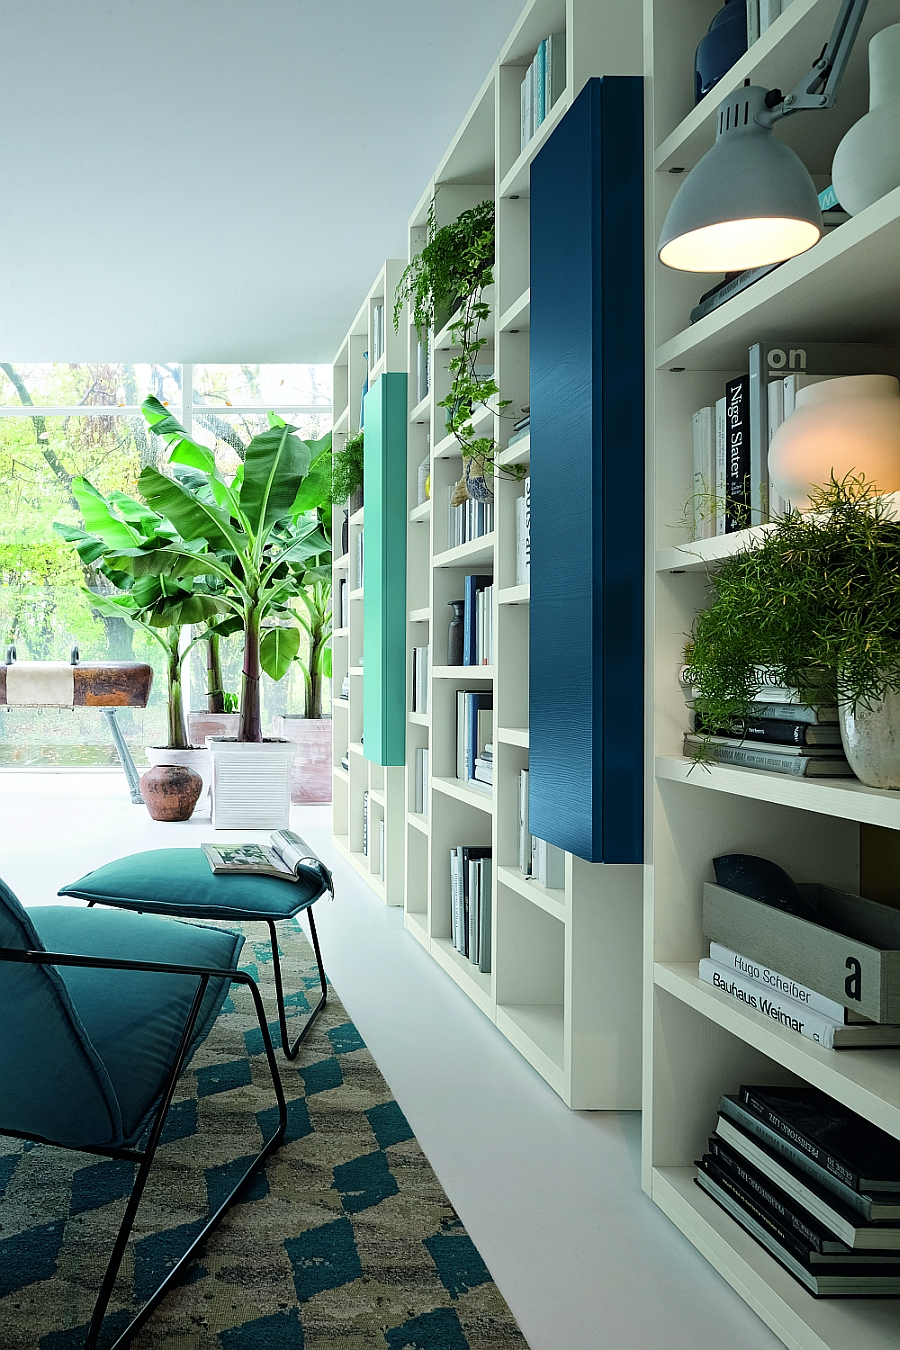 Modern Modular Wall Units For Living Room on Living Room Wall Units id=85402